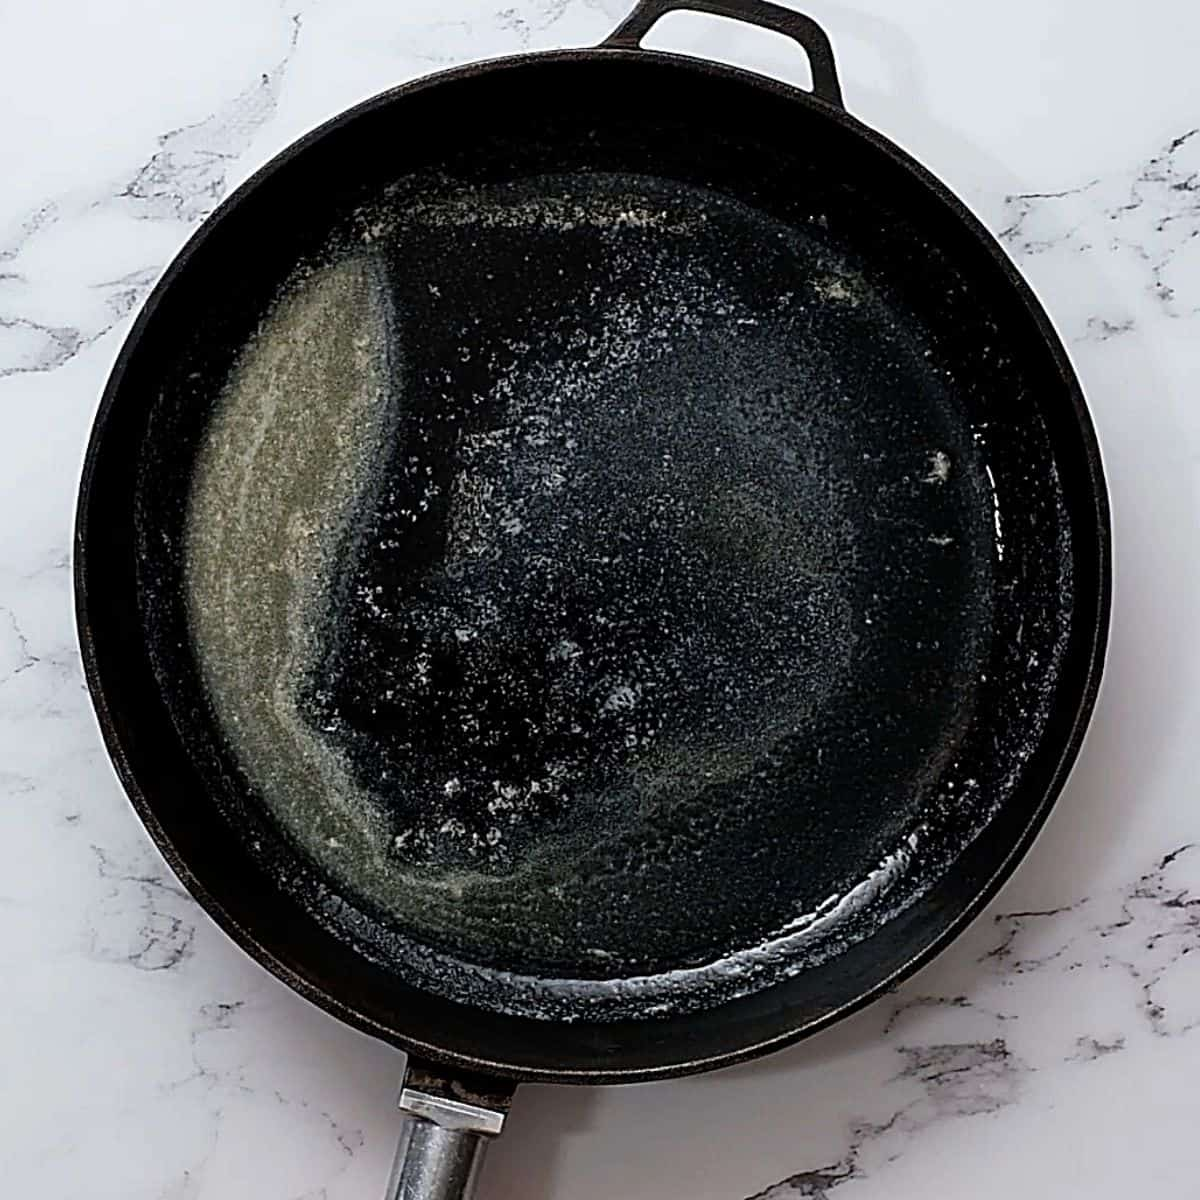 Skillet with melted butter.